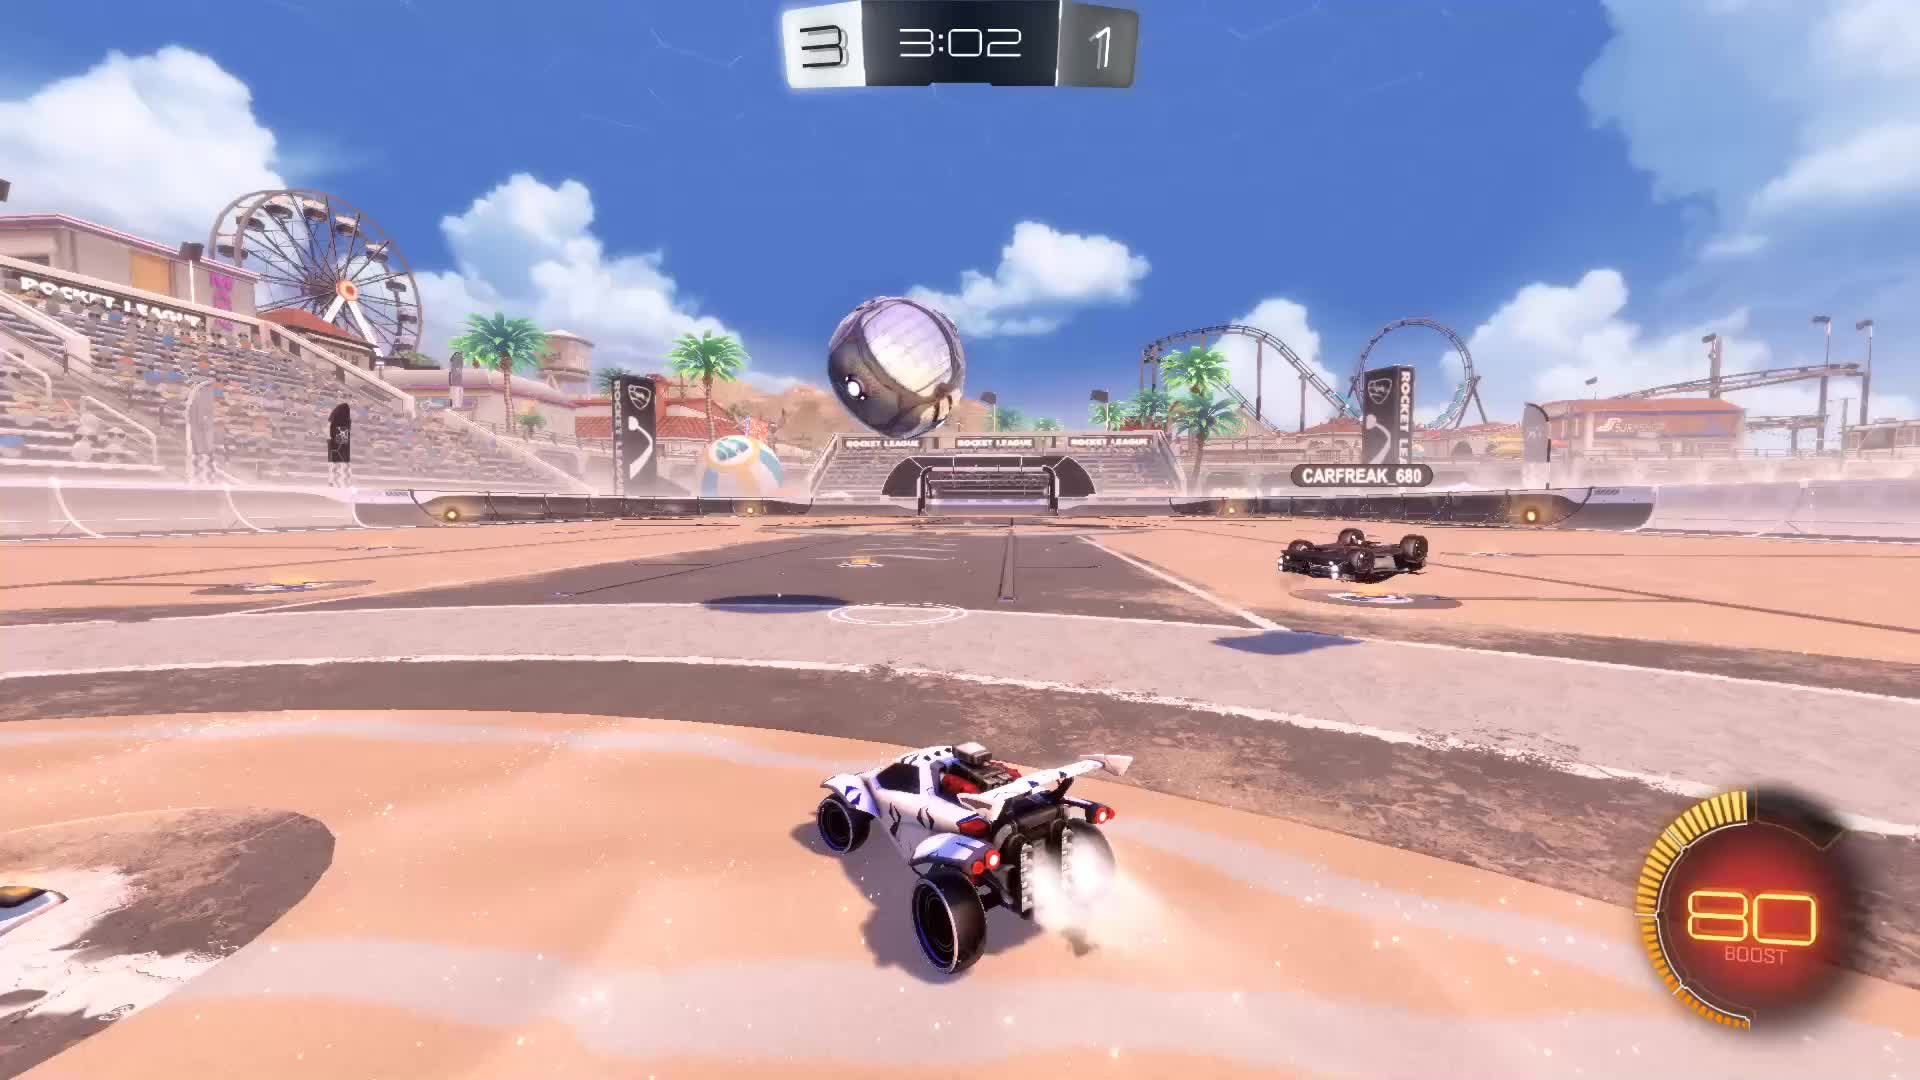 Gif Your Game, GifYourGame, Goal, Rocket League, RocketLeague, Traceur YT, Goal 5: Traceur YT GIFs